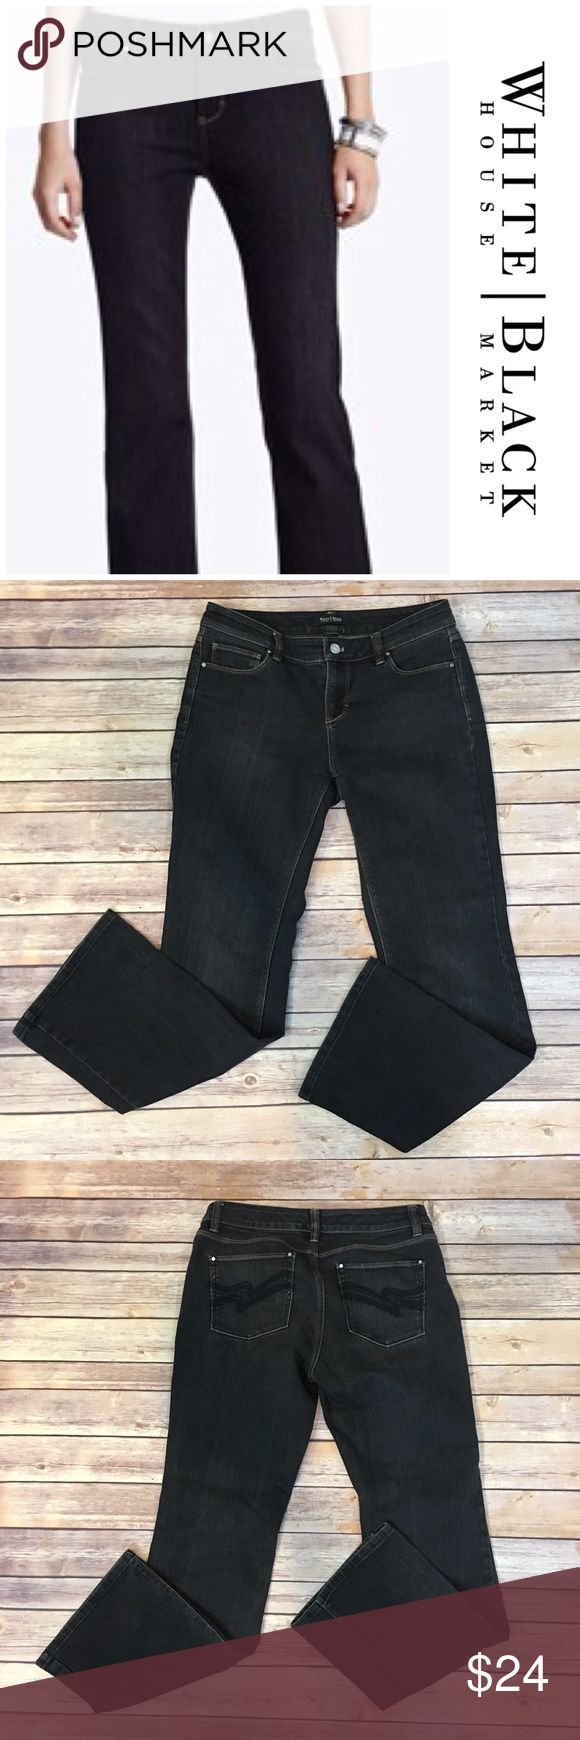 "WHBM Black Bootcut Jeans WHBM Black Bootcut Jeans. Size 6 Short. Made of 77% cotton/ 23% elastane. Front rise 9""/ back 11"". Inseam 29"" White House Black Market Jeans Boot Cut"